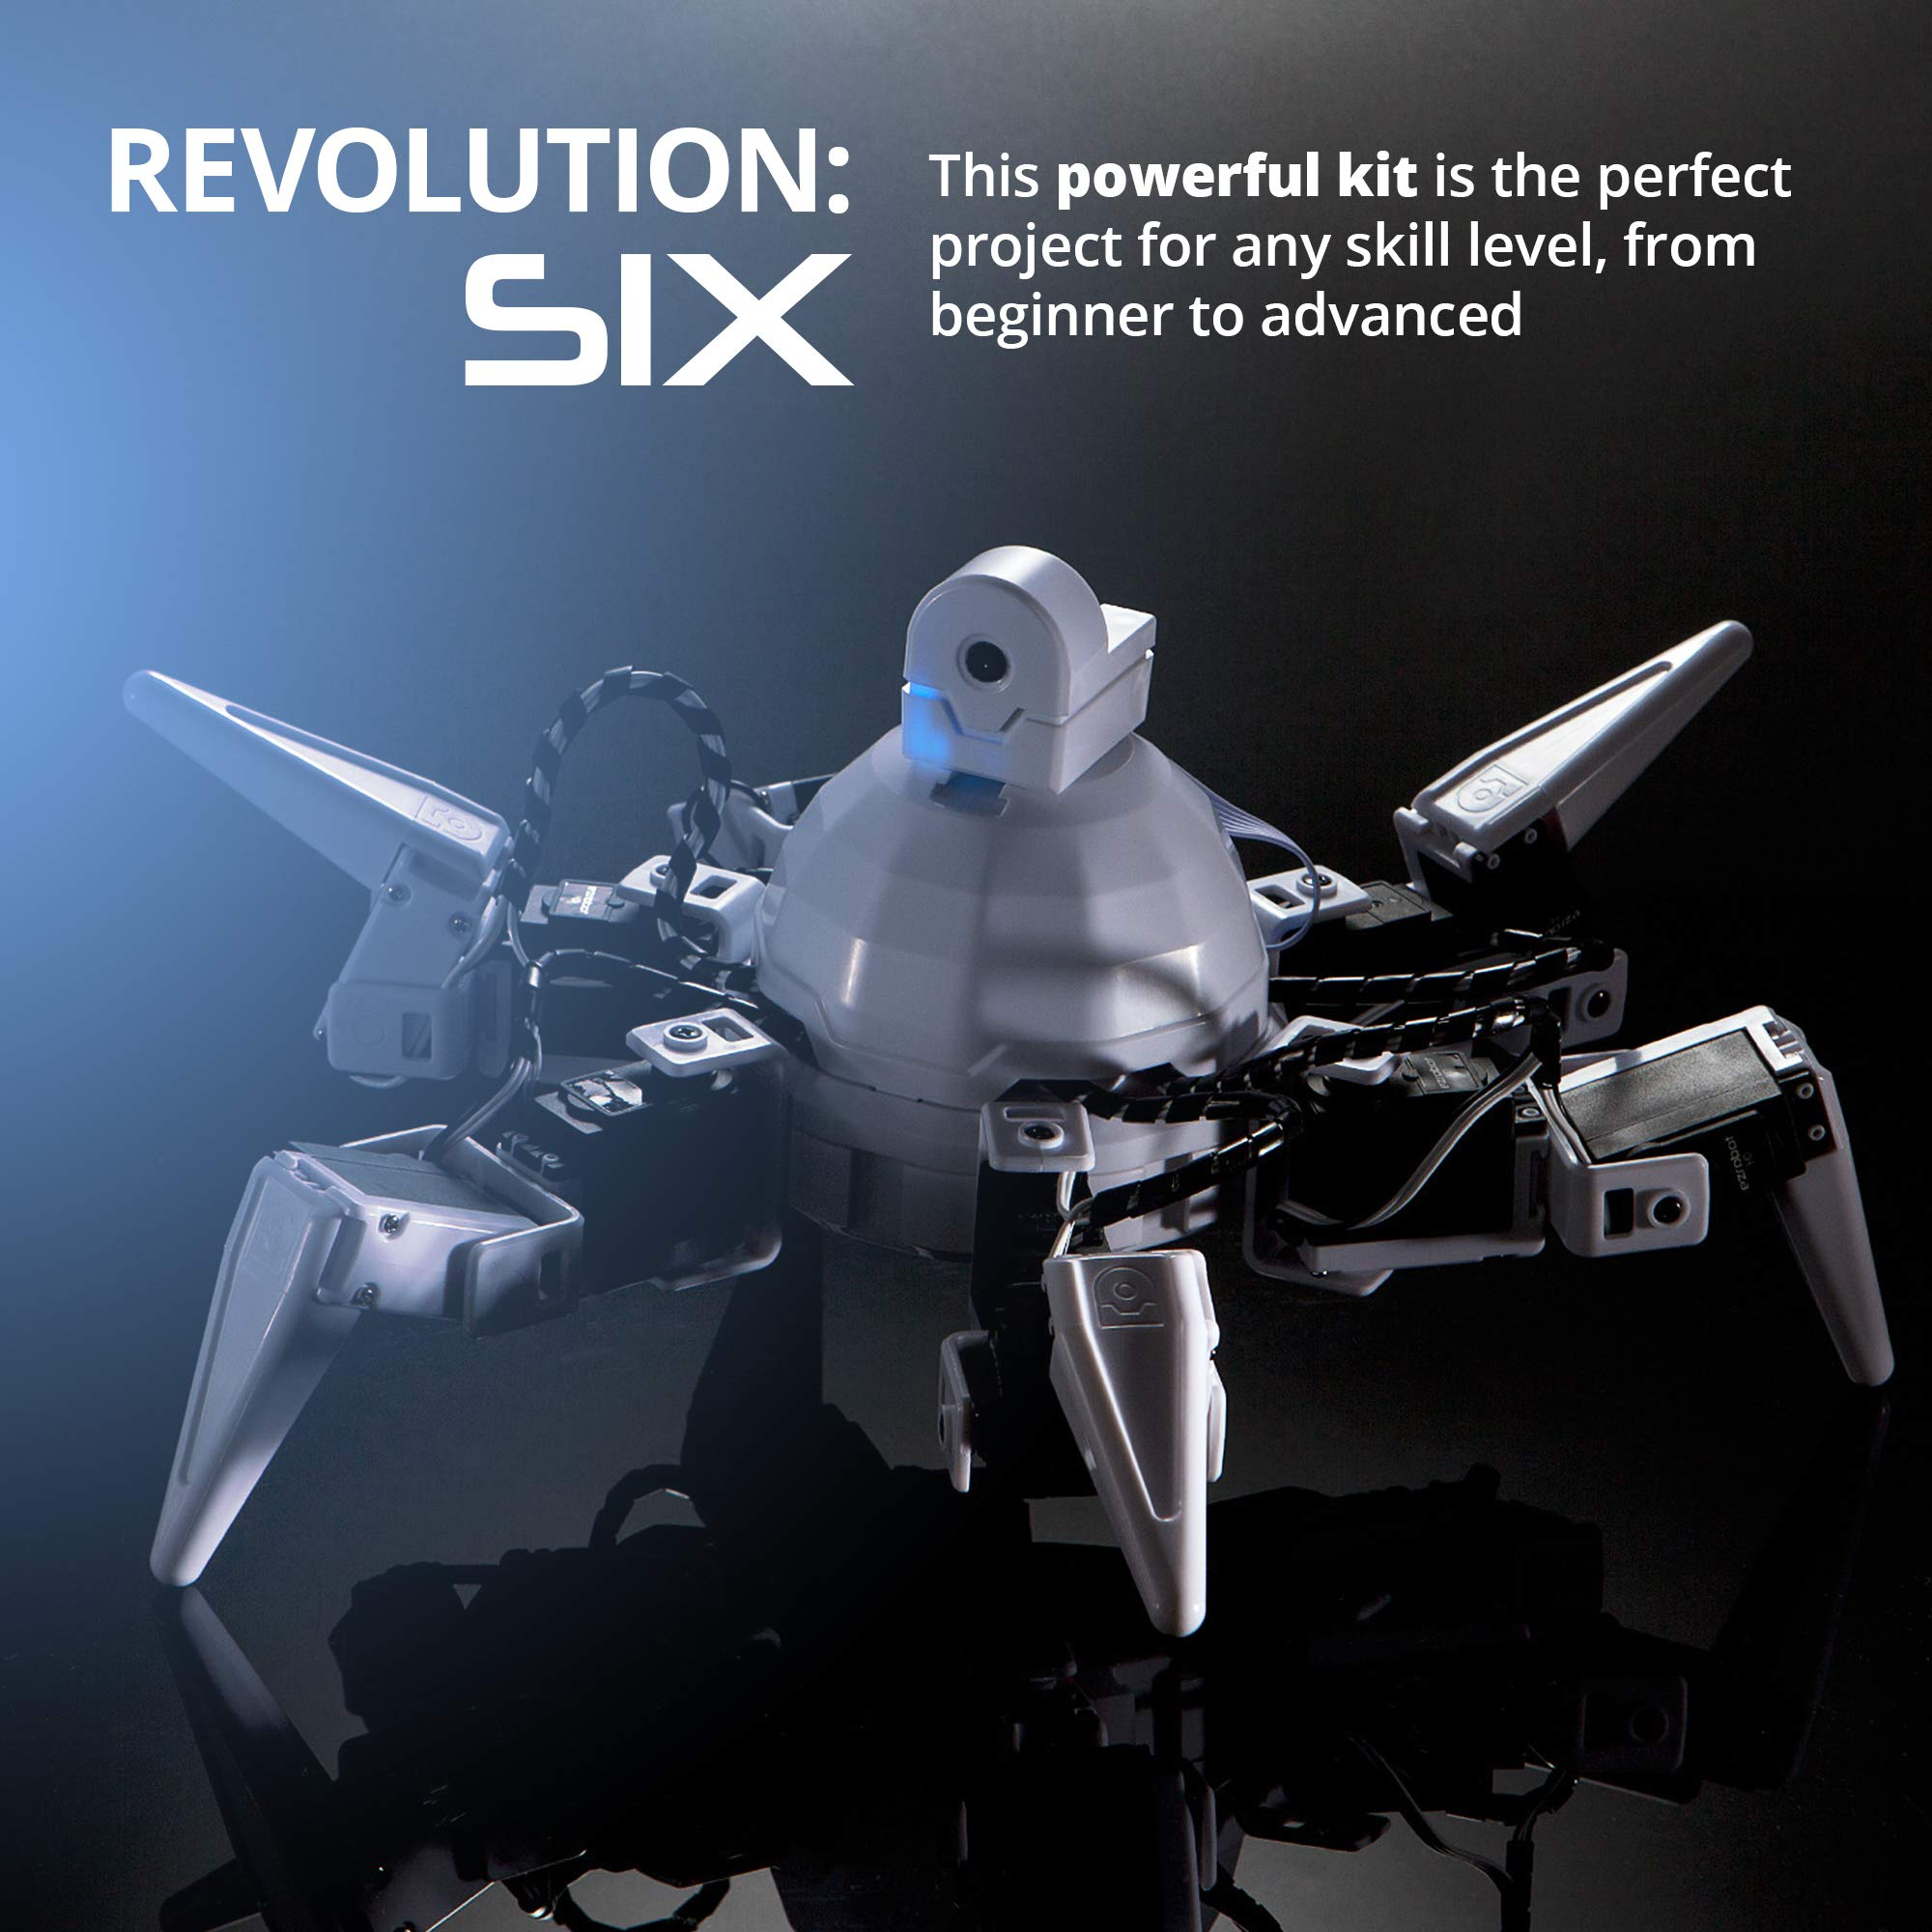 EZ-Robot Six Hexapod Kit DIY STEAM Educational Robotics Set for Kids & Adults Learning to Design & Build Programmable Electronic Robots by EZ-Robot (Image #7)